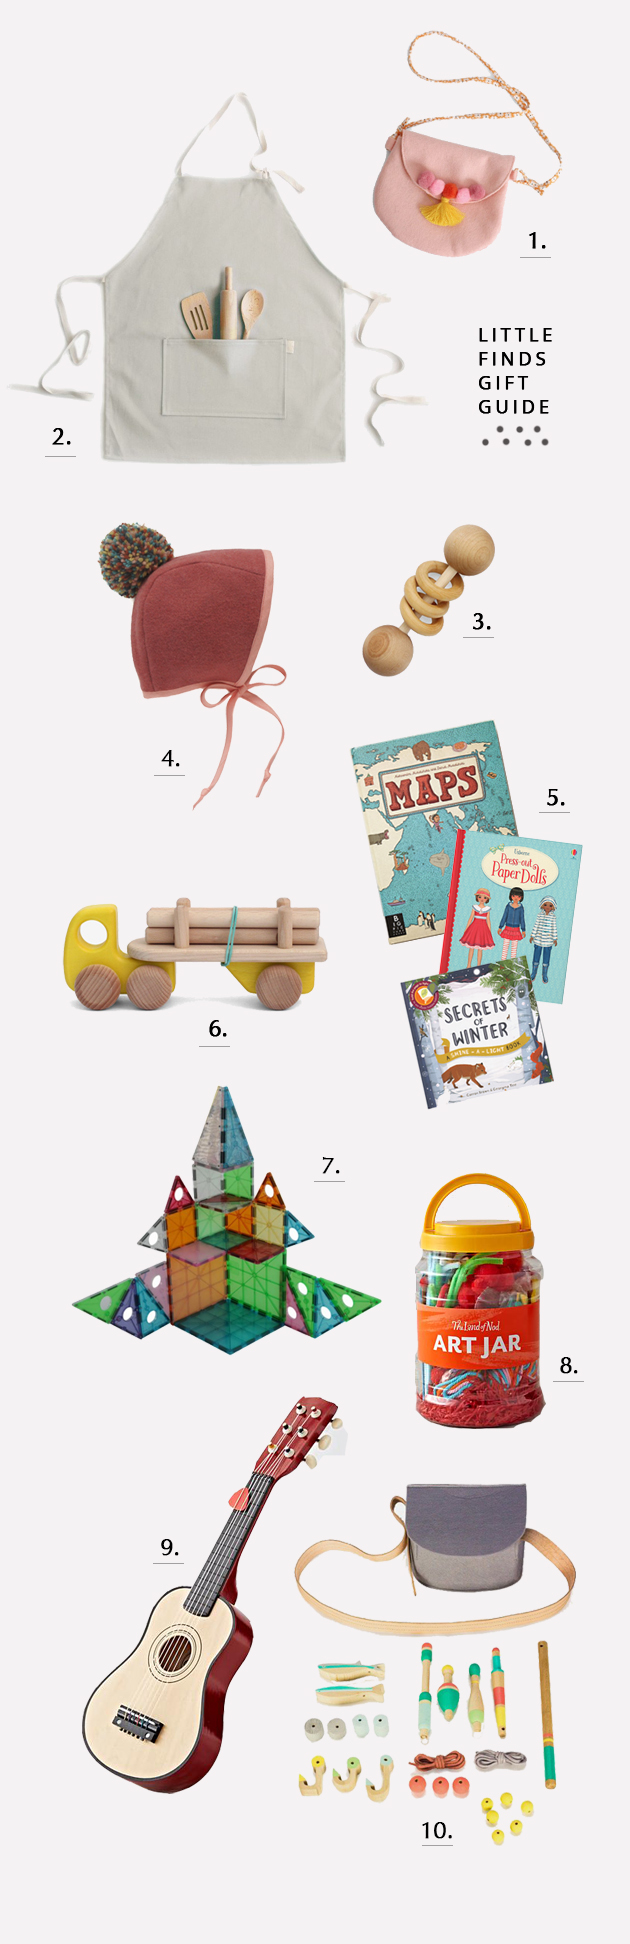 little-finds-gift-guide